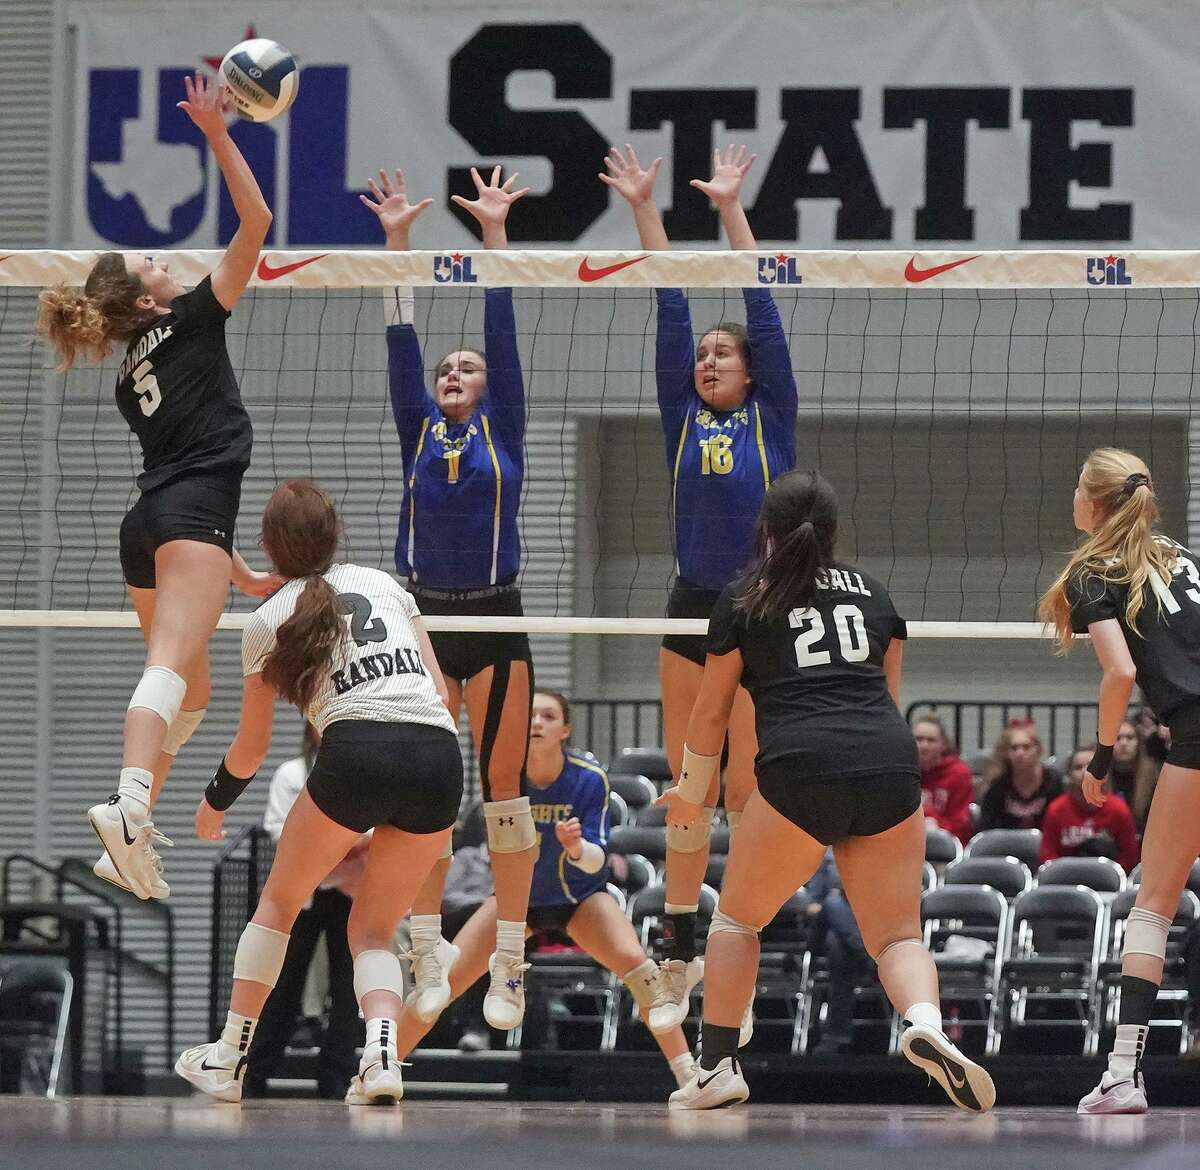 Alamo Heights' Avery Rosenblum (1) and Faith Holzhausen (16) try to block the shot of Randall's Zoe Parker (5) during the Alamo Heights High School vs. Canyon Randall High School state semifinal volleyball match on Friday, November 22, 2019 at the Curtis Culwell Center in Garland, Texas. Randall won the match 3 games to zero. CREDIT: Louis DeLuca for the San Antonio Express News